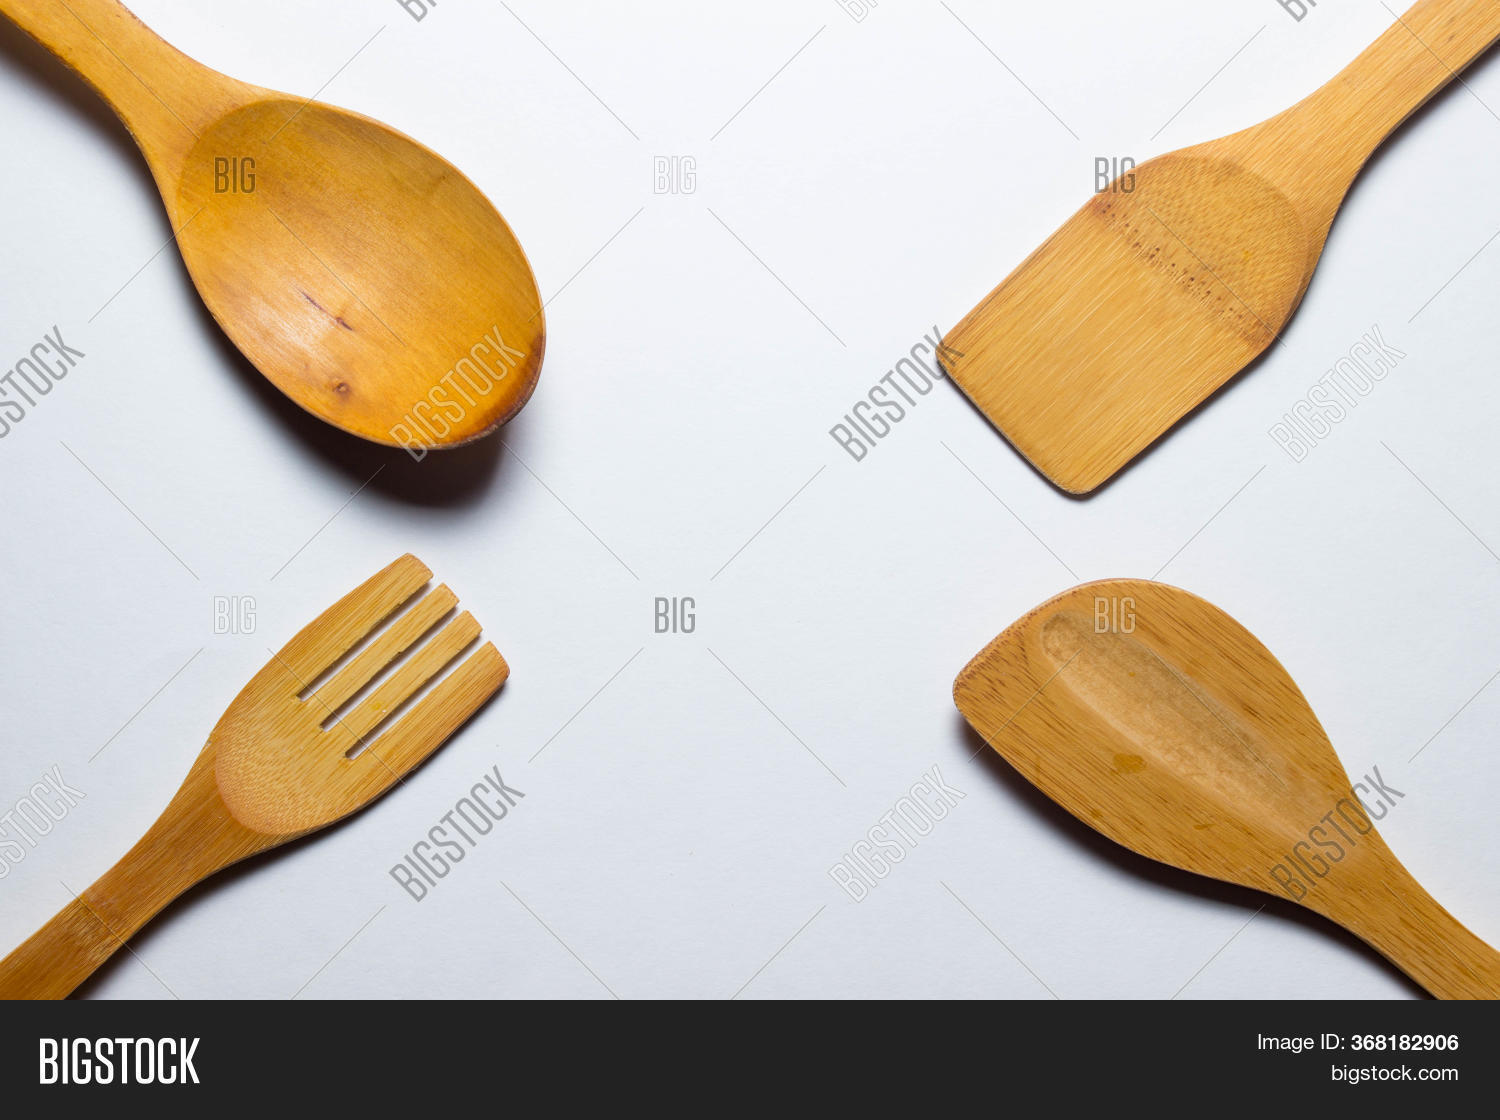 Four Wooden Cutlery Lie In Four Different Edges Of Photography On A White Background. Wooden Spoon,